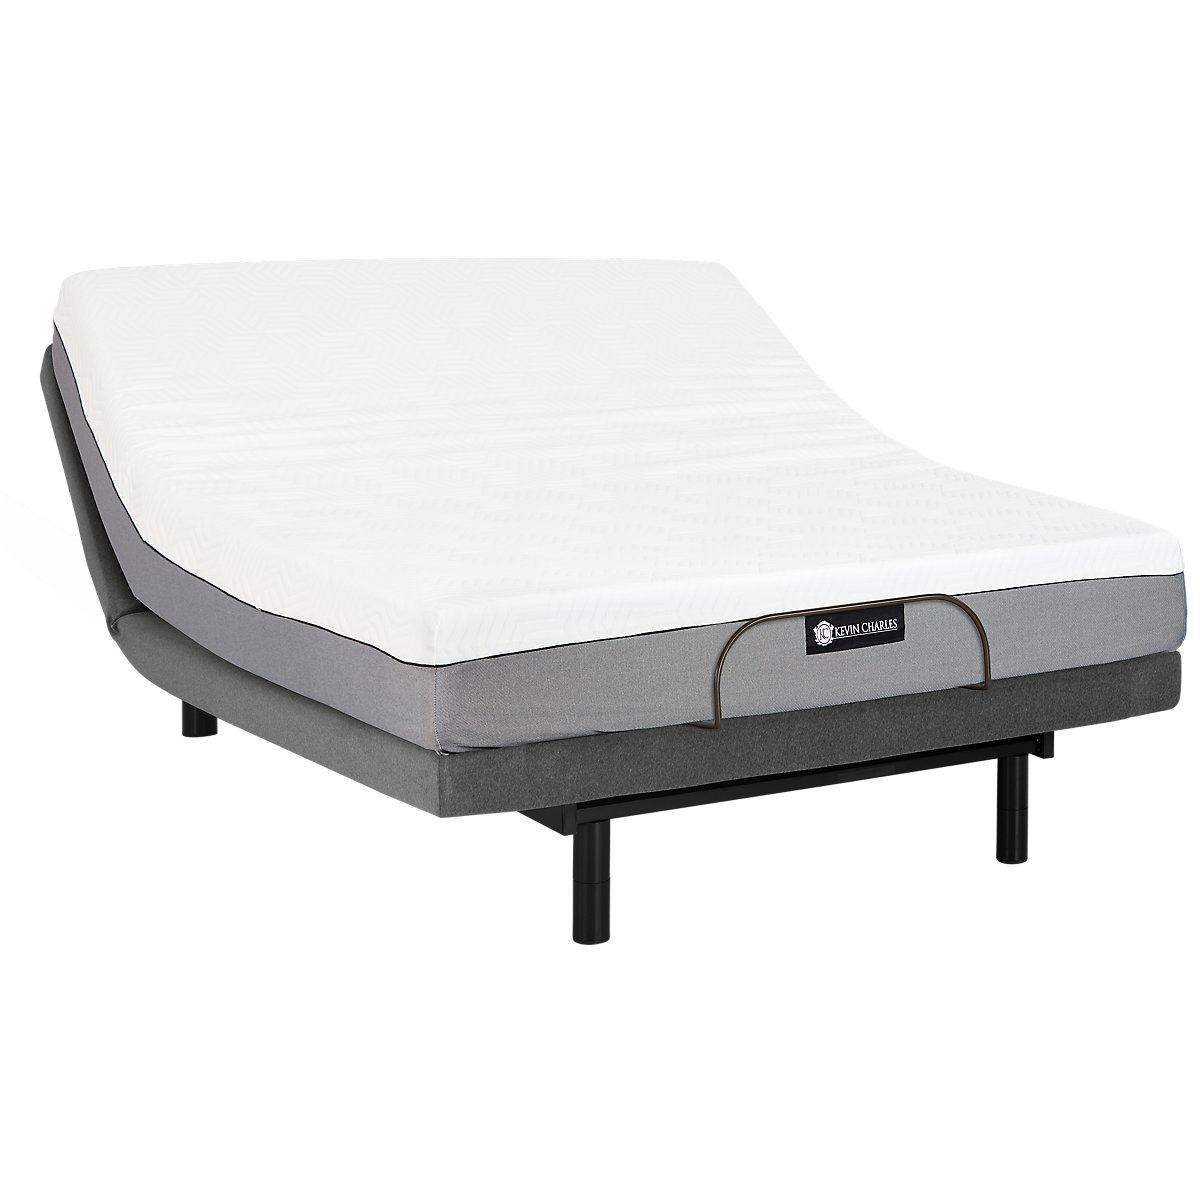 City furniture siesta cushion firm memory foam select adjustable mattress set Memory foam mattress set